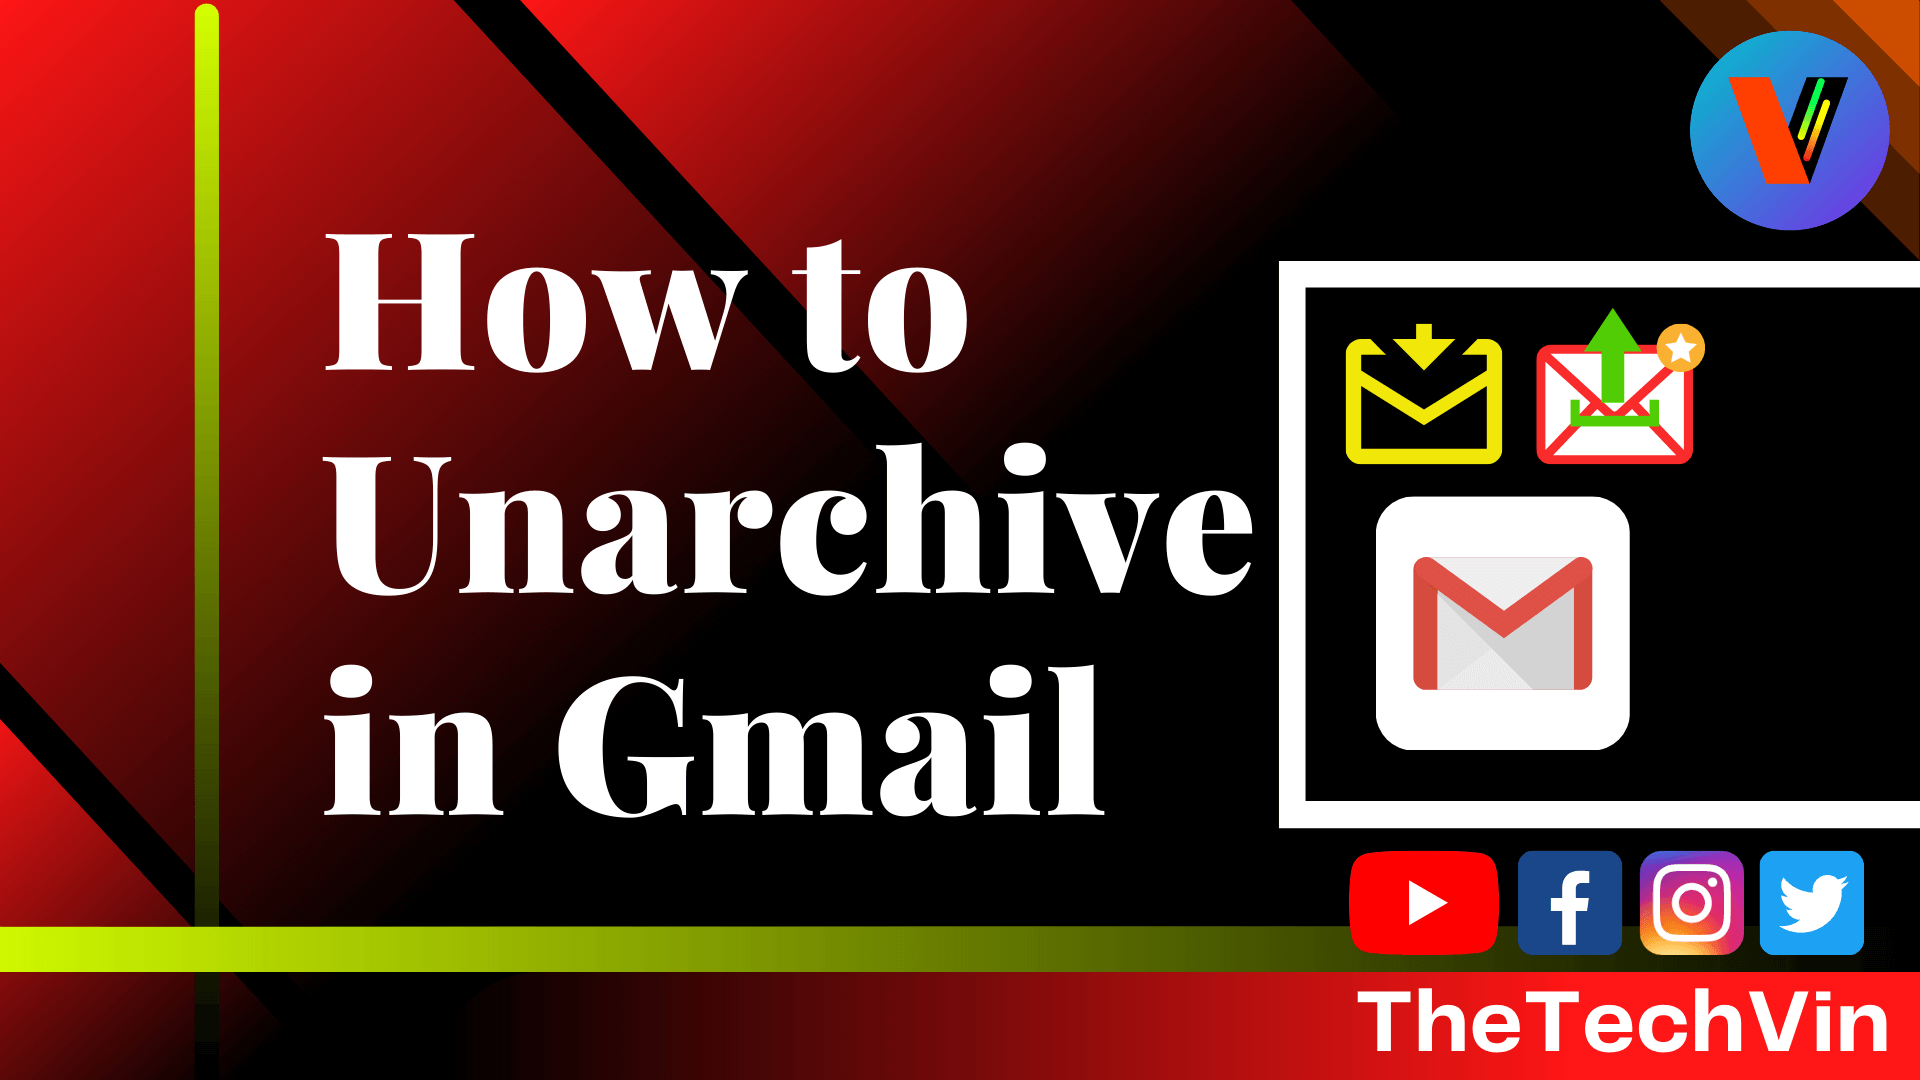 How to Unarchive Emails in Gmail